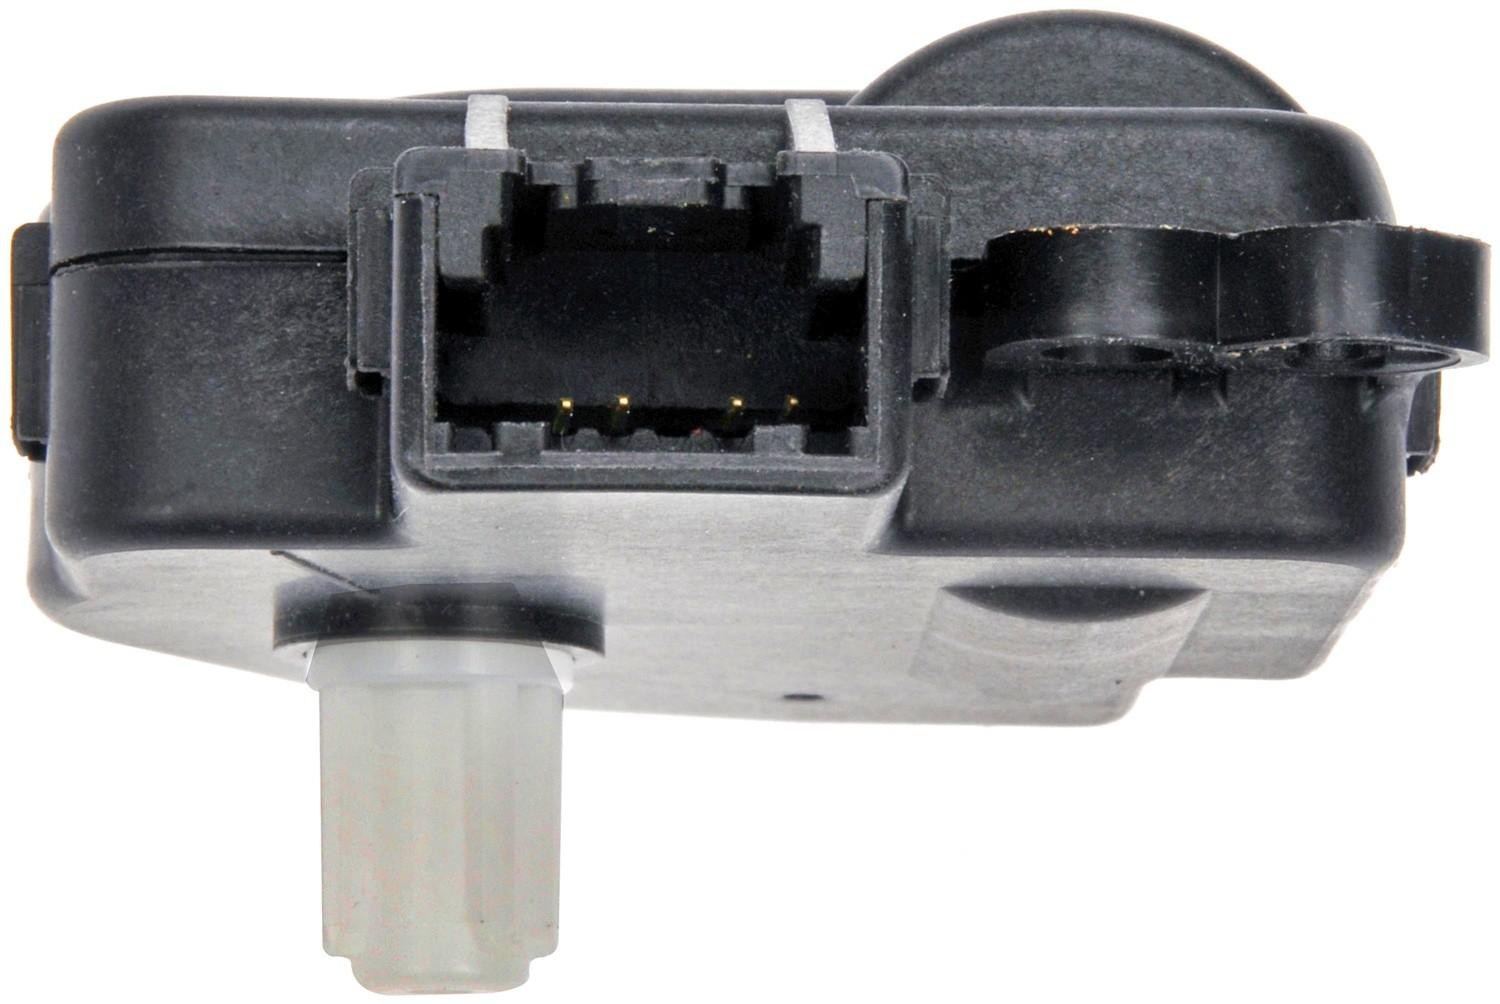 DORMAN OE SOLUTIONS - HVAC Heater Blend Door Actuator - DRE 604-931